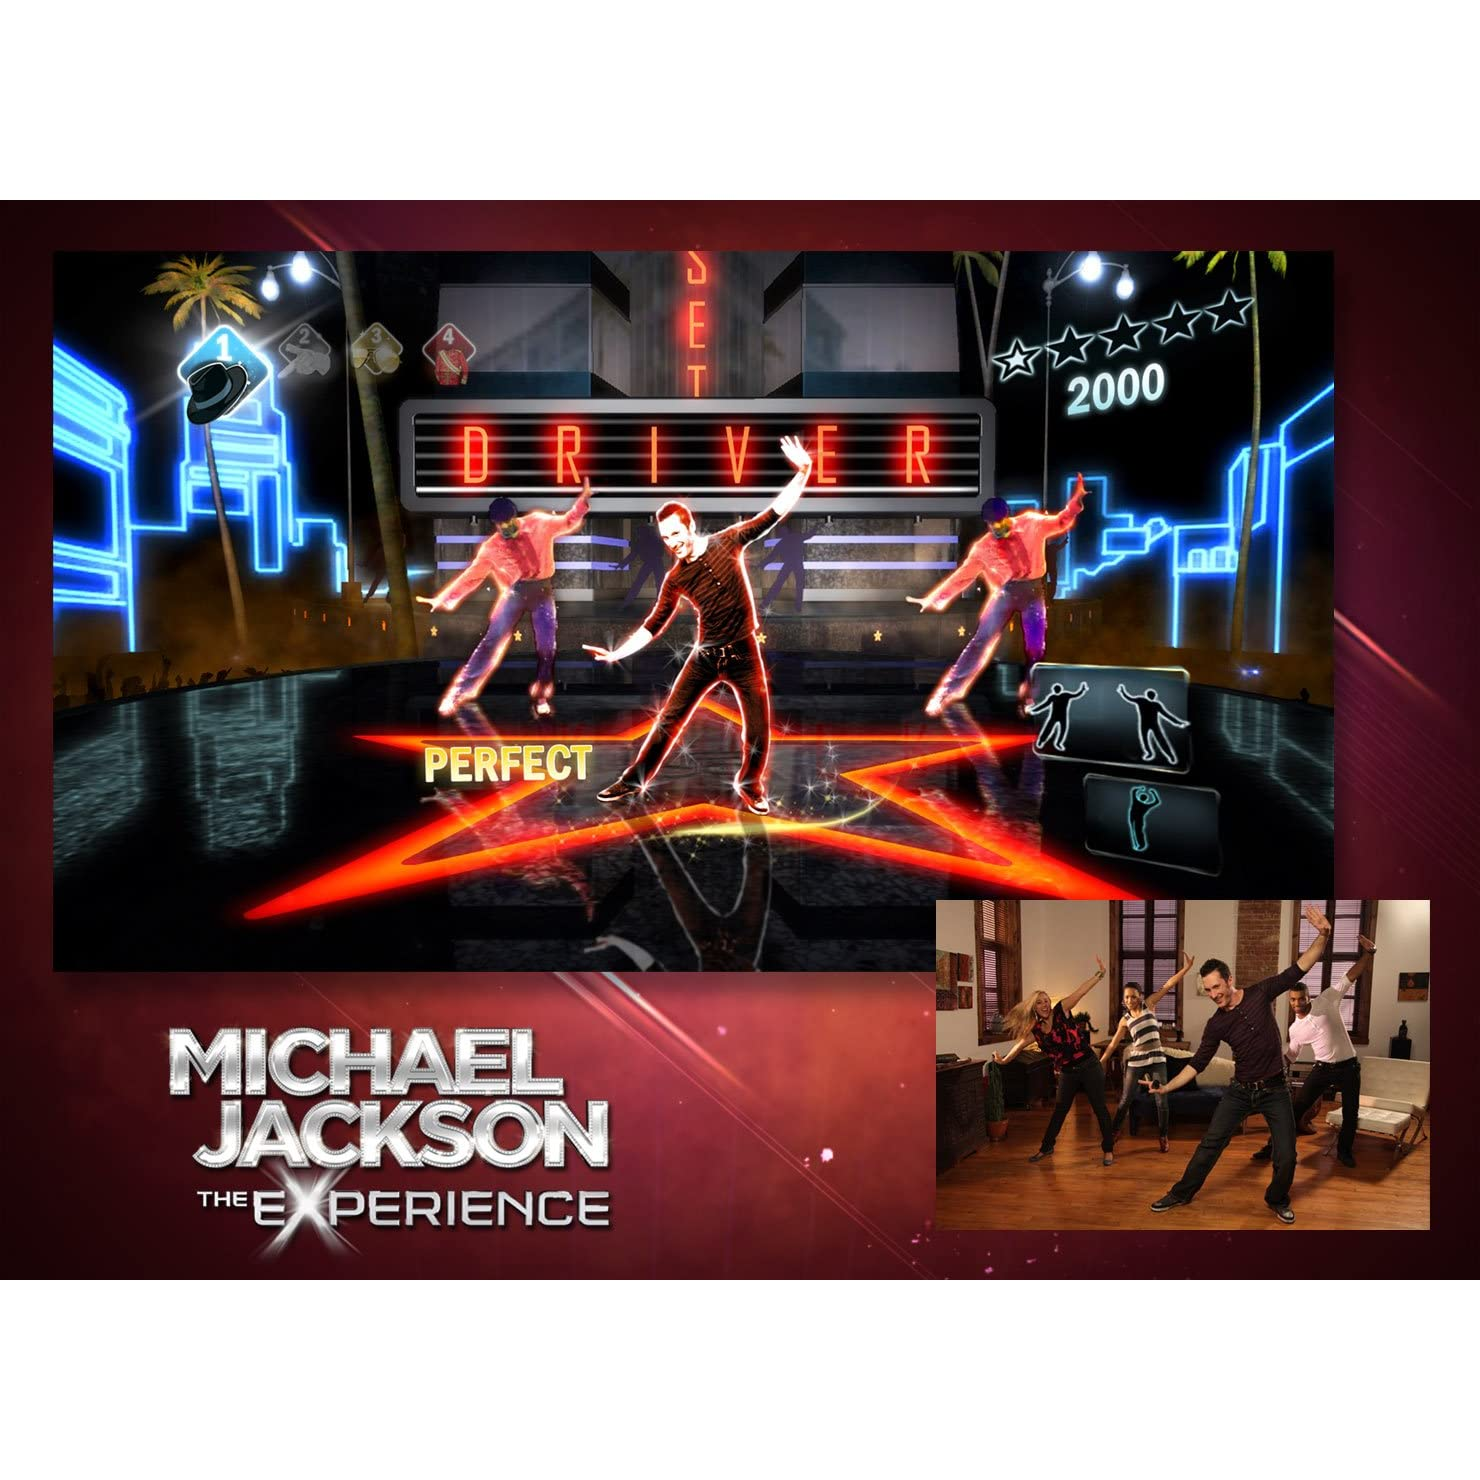 Online Game, Online Games, Video Game, Video Games, kinect, dance, fitness, michael Jackson, PS3, Playstation 3, Xbox 360, Nintendo, Wii, DS, Michael Jackson, Michael Jackson The Experience